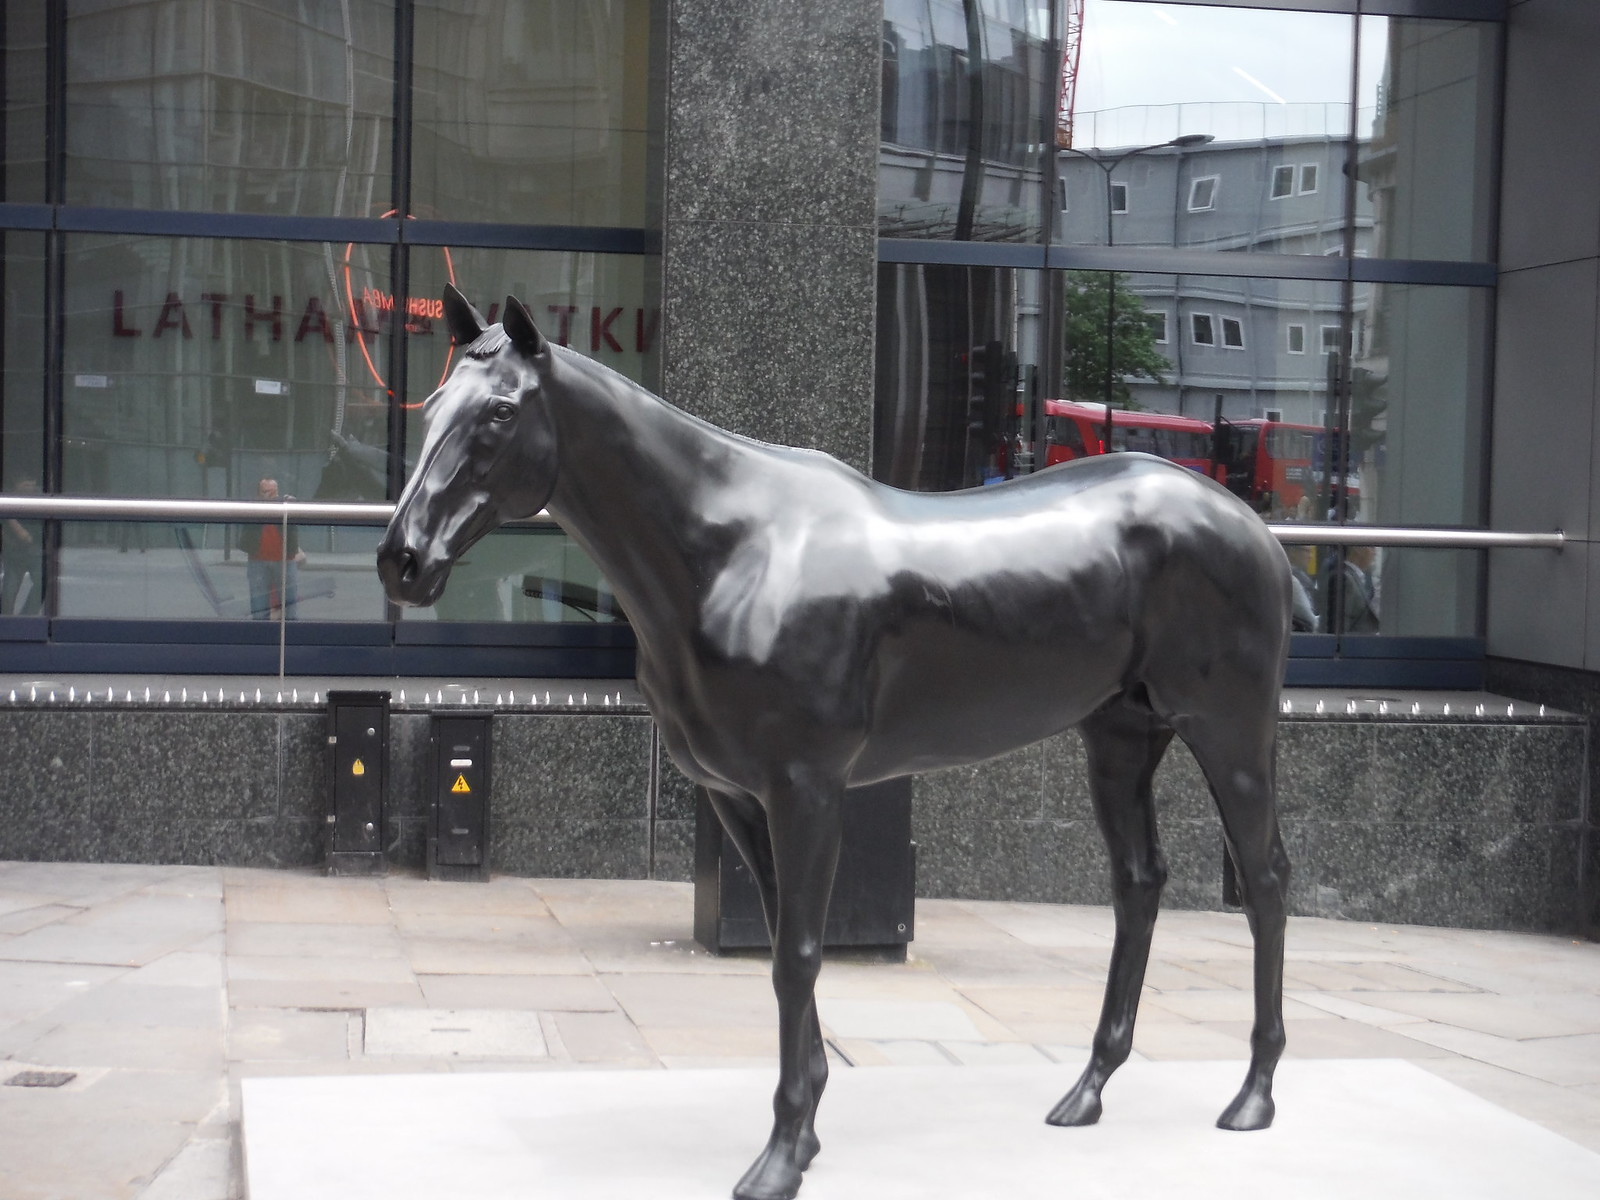 Mark Wallinger - The Black Horse SWC Walk Short 24 - Sculpture in the City